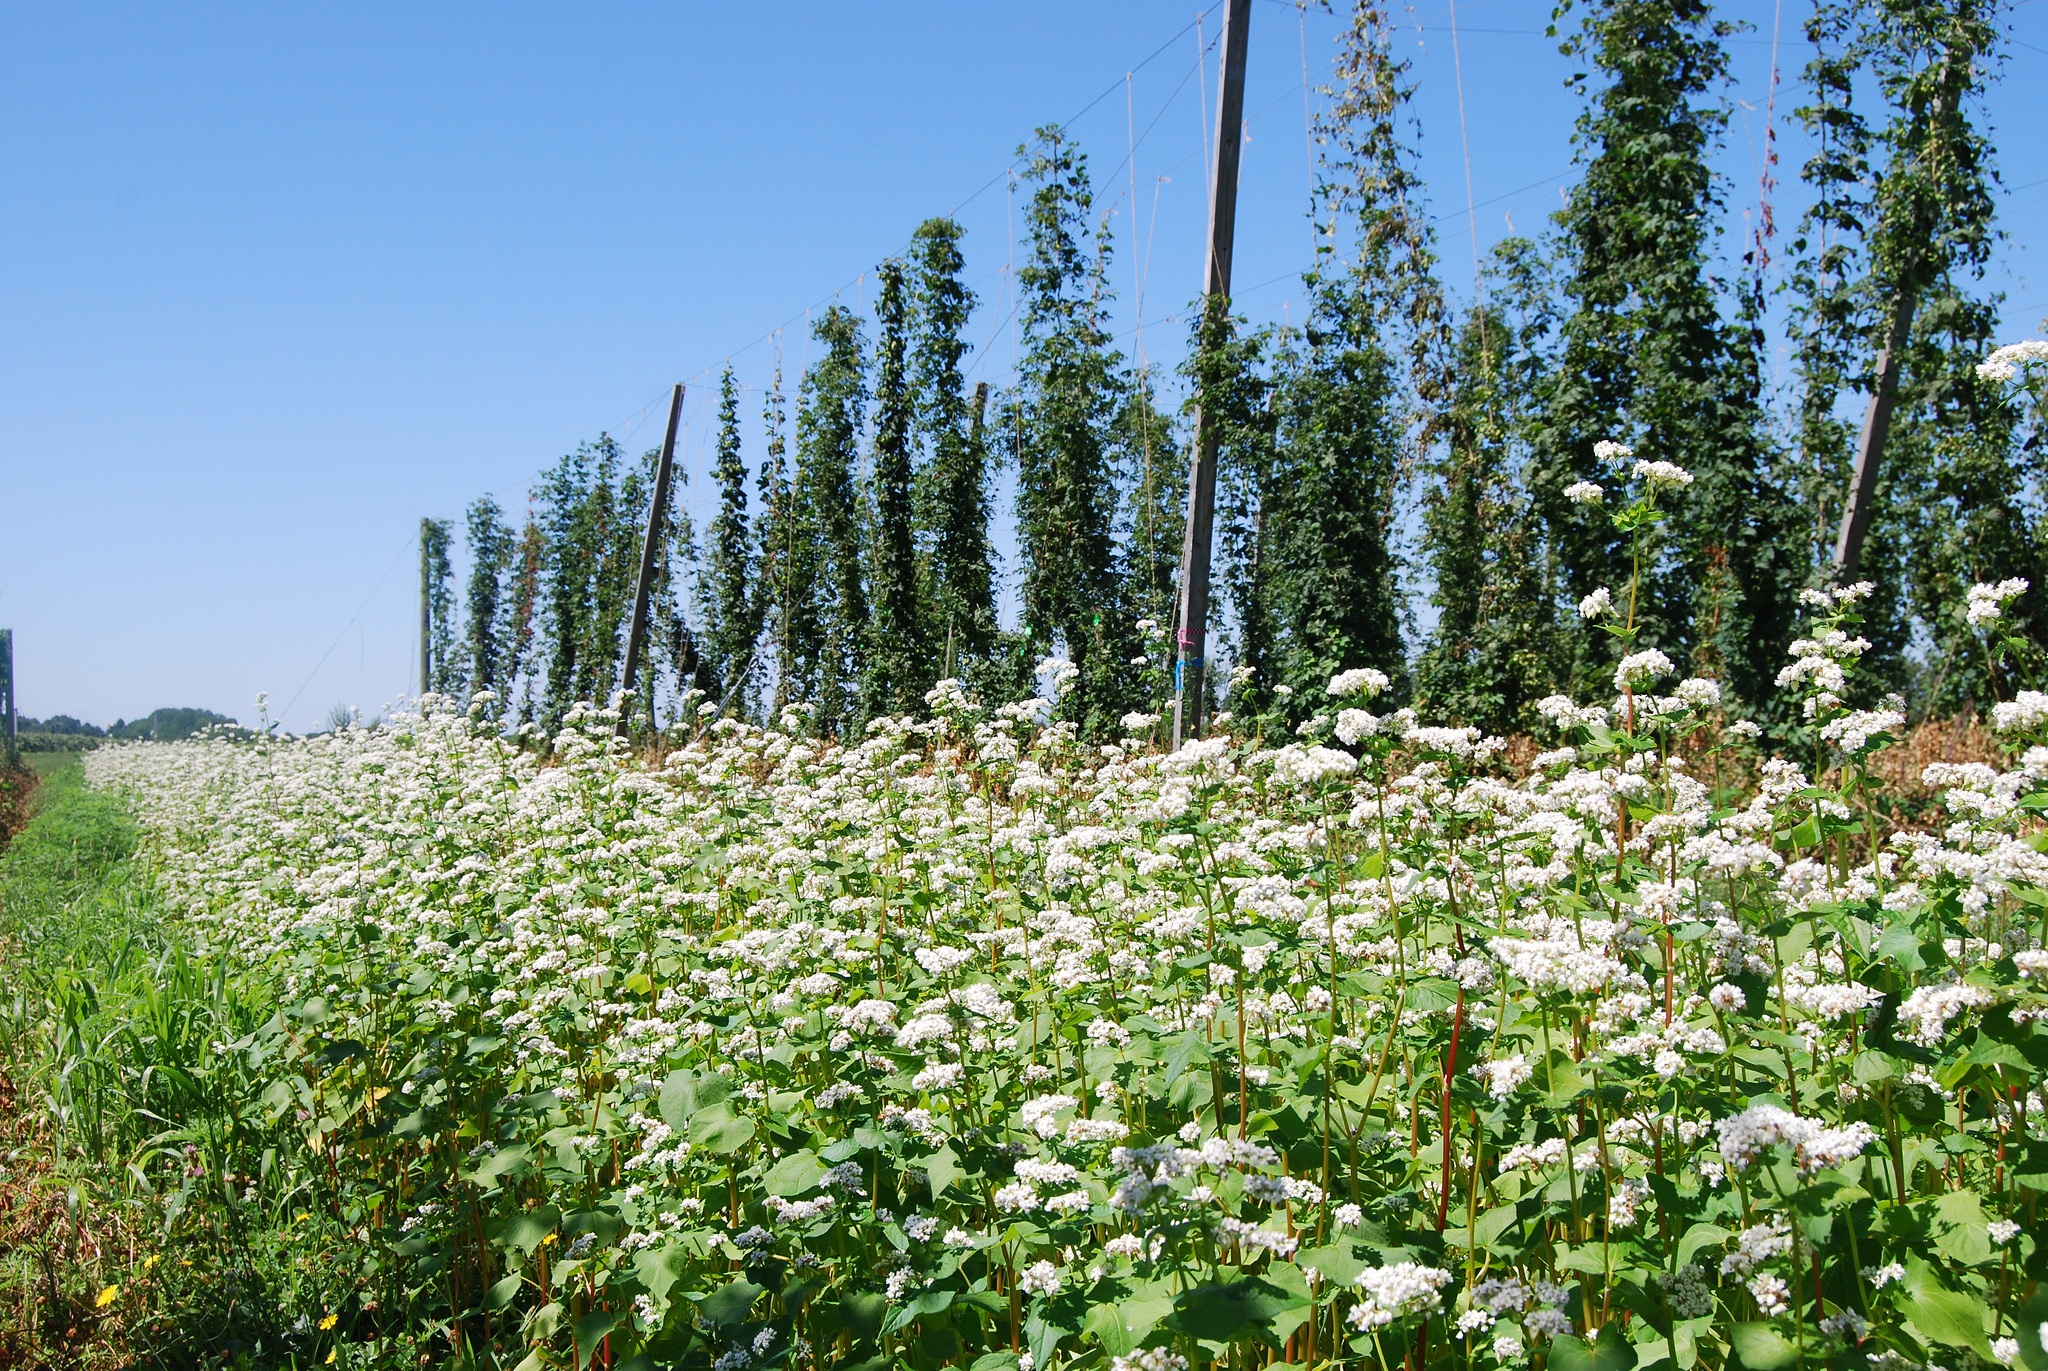 Buckwheat - Extracts soil phosphorus.Attracts pollinators.Suppresses weeds.